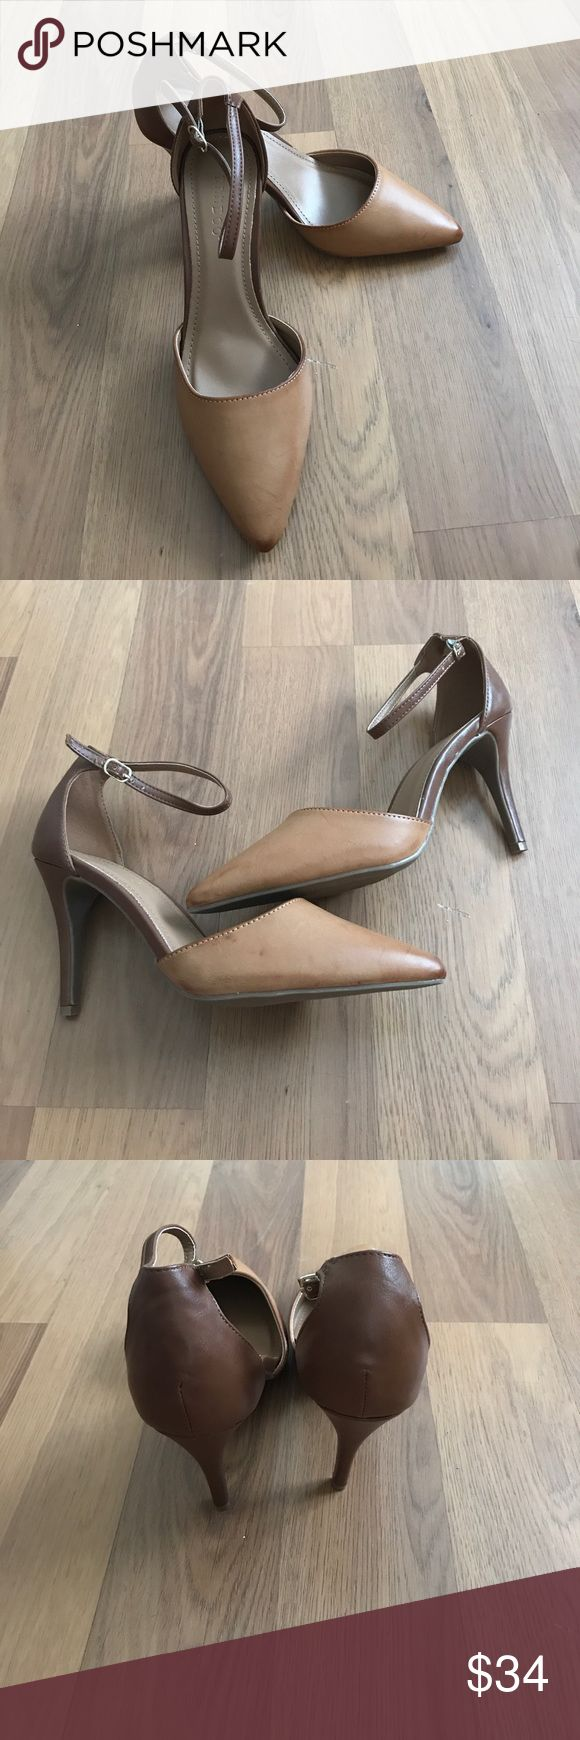 """Bamboo strappy heels New condition (only flaws to note are some scuffing on the bottom). Camel color with unique markings for some added flare. Super cute heel! Size 10. About a 4"""" heel. bamboo Shoes Heels"""